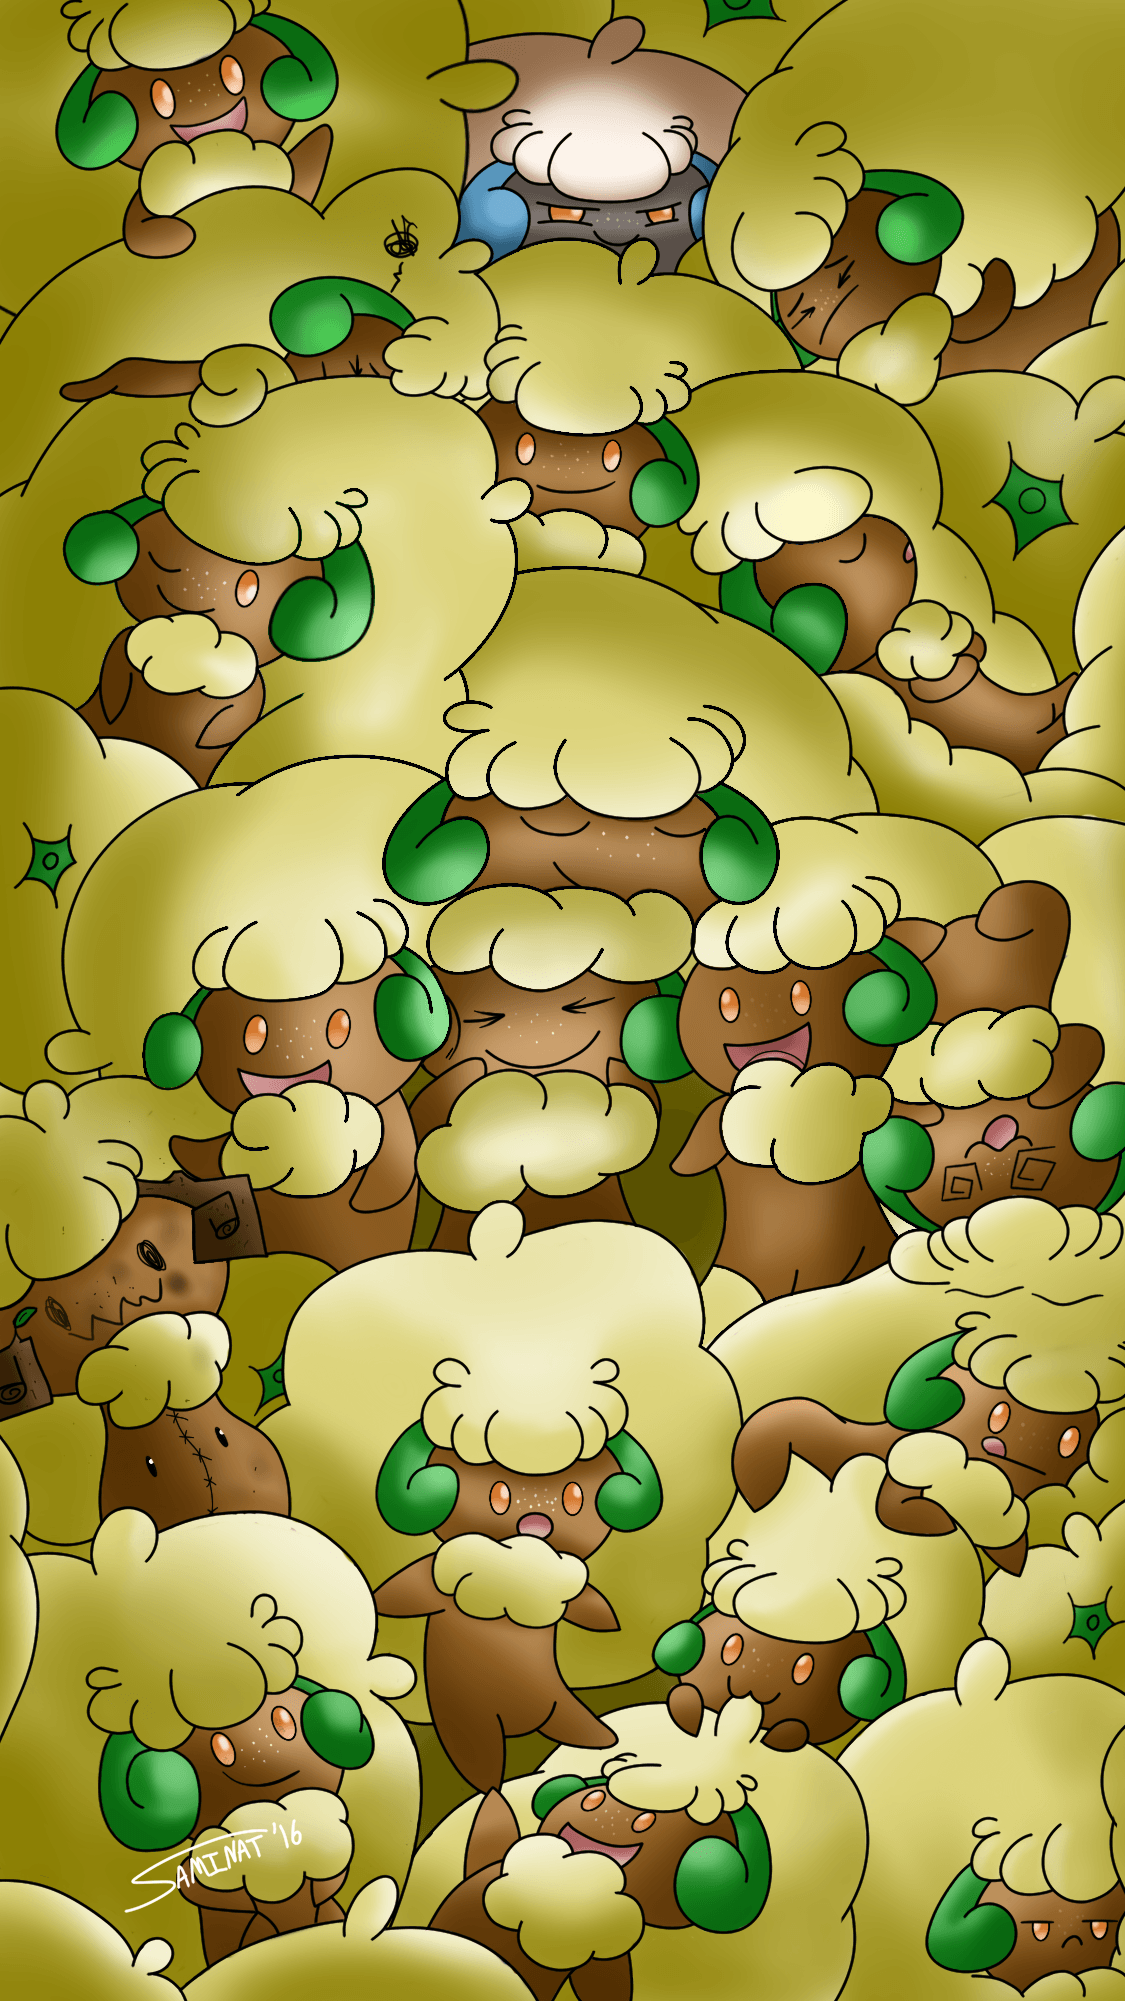 A Whimsy of Whimsicott by Saminat on Newgrounds